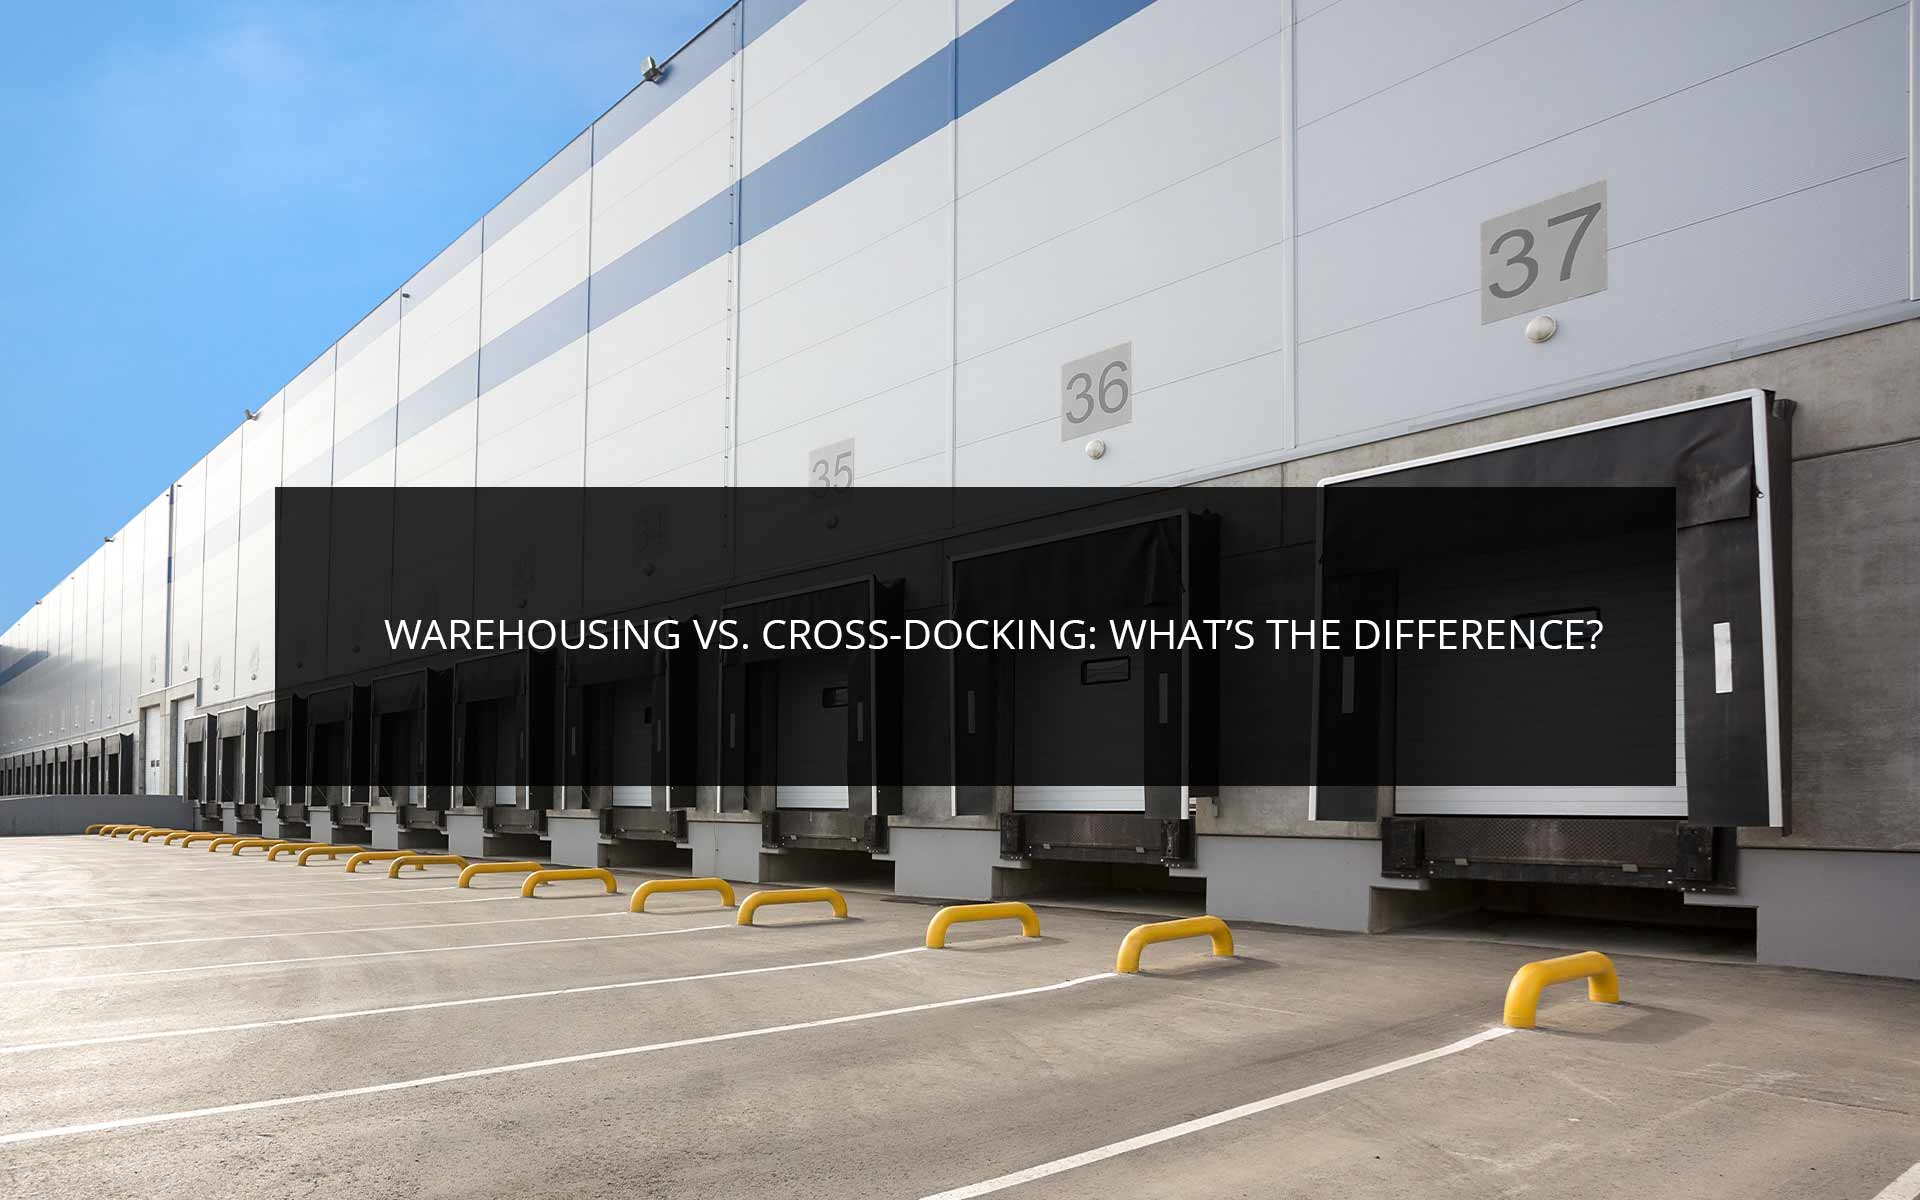 Warehousing vs. Cross-Docking: What's the Difference?